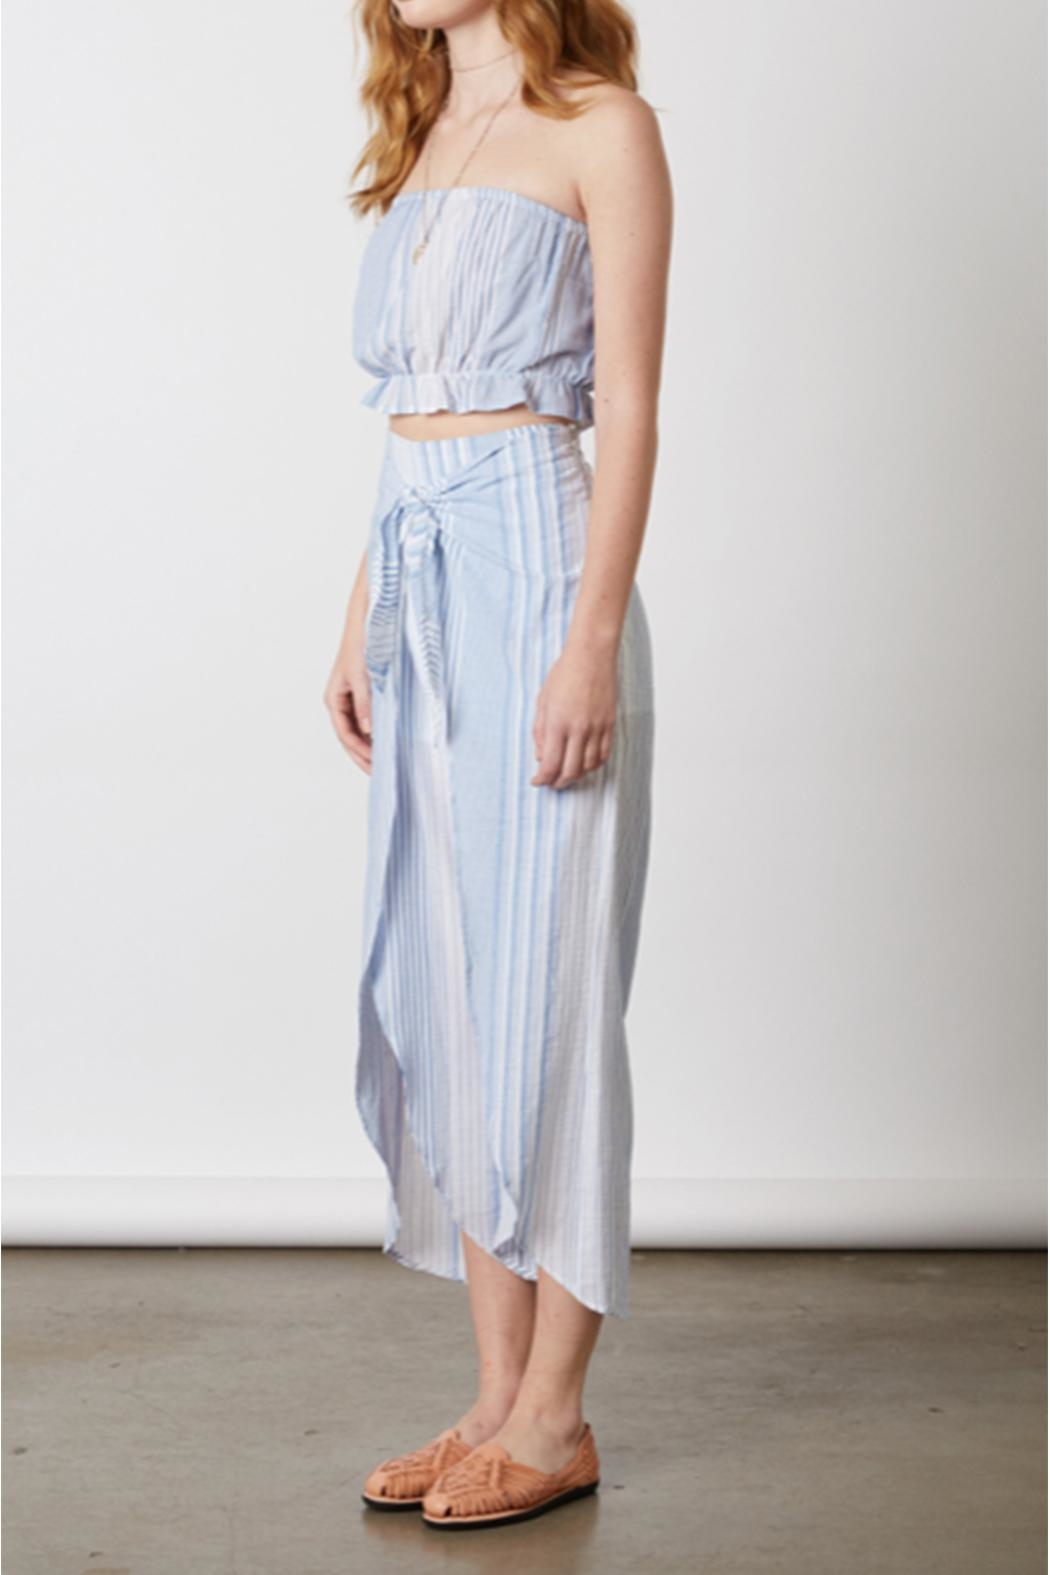 Cotton Candy Chambray Two Piece - Side Cropped Image